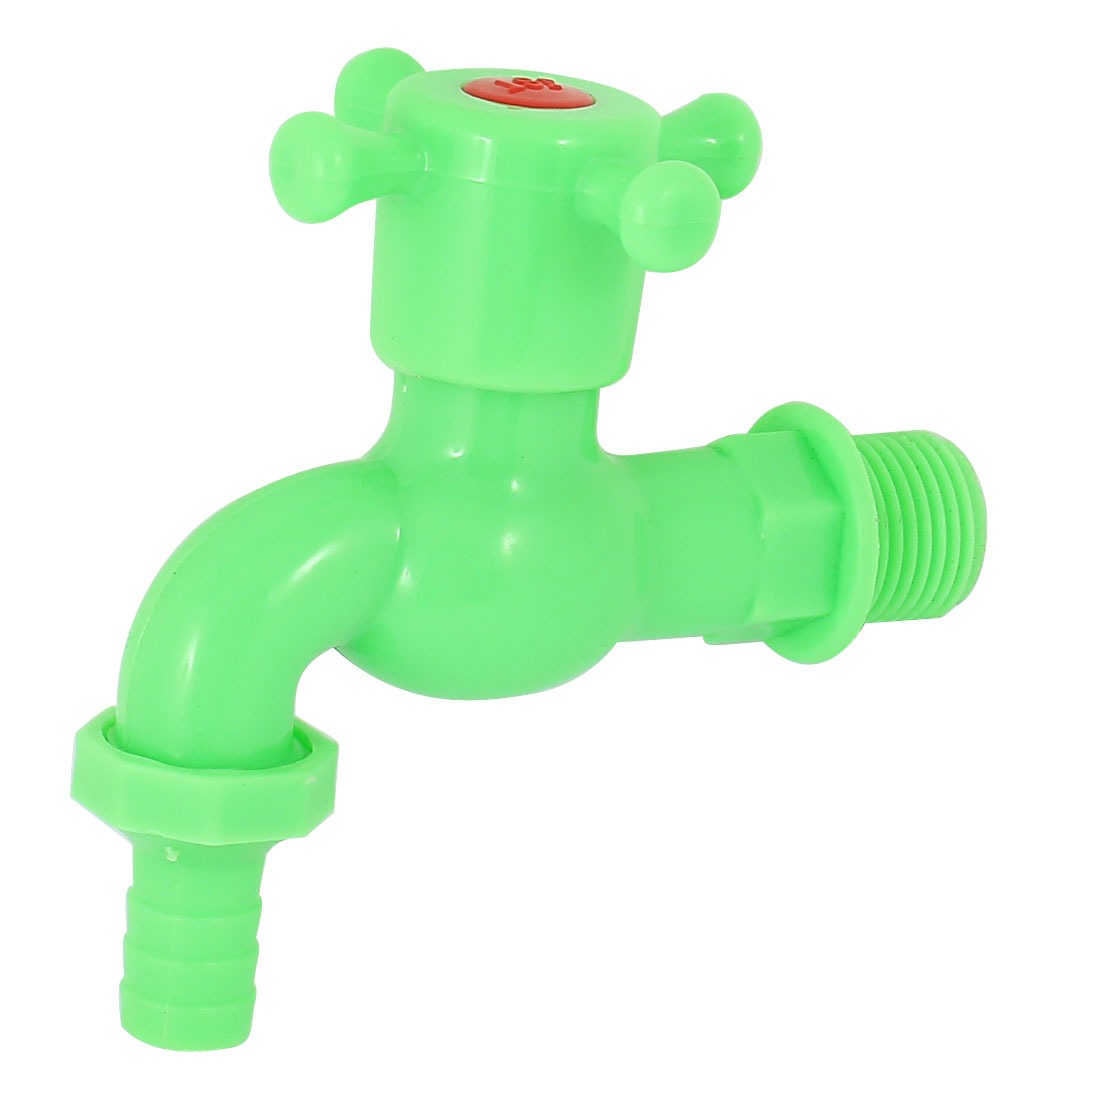 Home Kitchen Basin Sink Green Plastic Turn Handle Water Tap Faucet